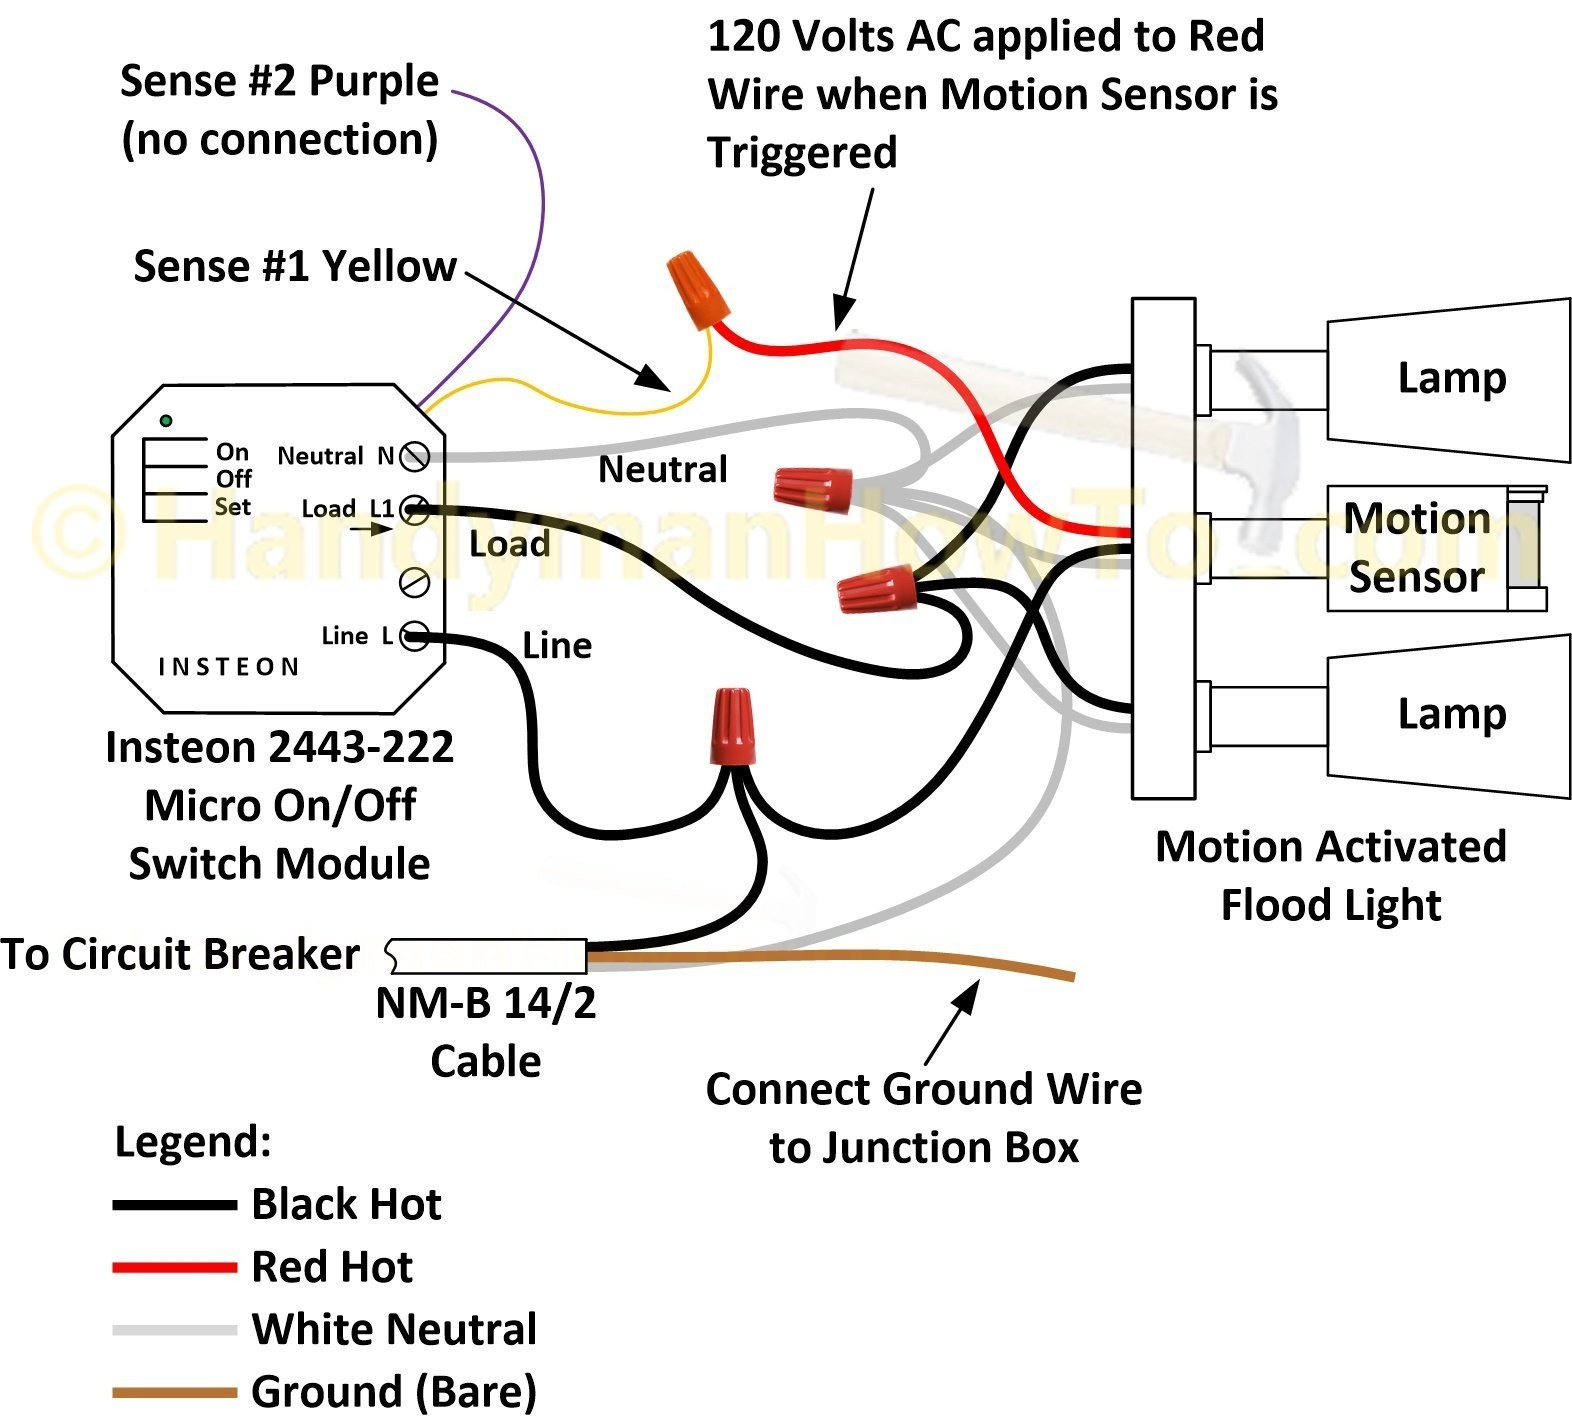 Swell Light Ground Wire Diagram Wiring Library Wiring Cloud Ymoonsalvmohammedshrineorg